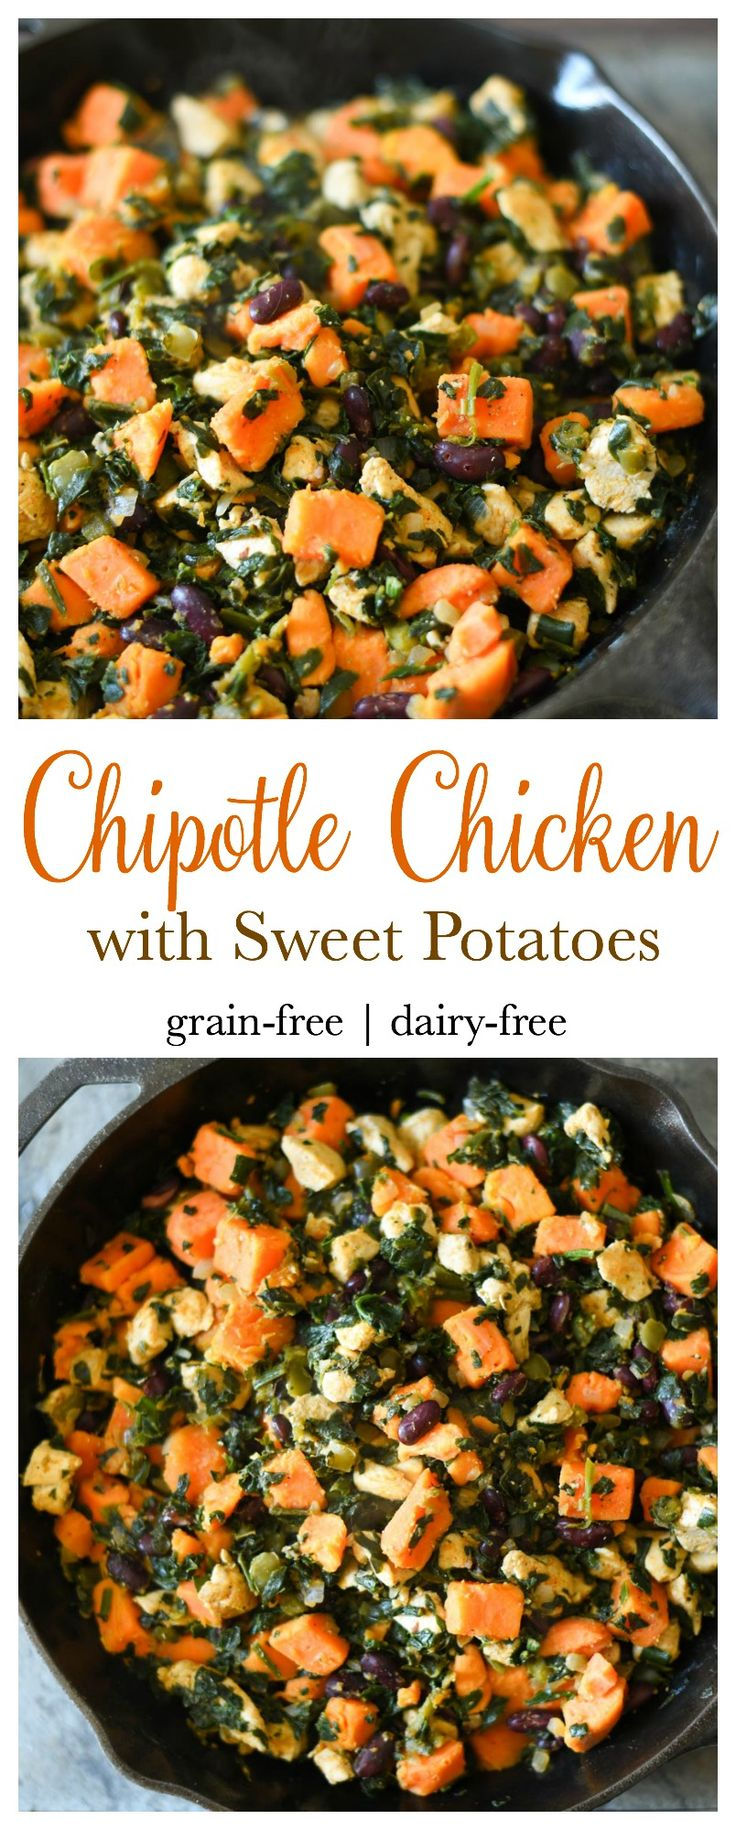 Quick and easy to make Chipotle Chicken with Sweet Potatoes. One pot. Grain-free, dairy-free dinner. THM-E